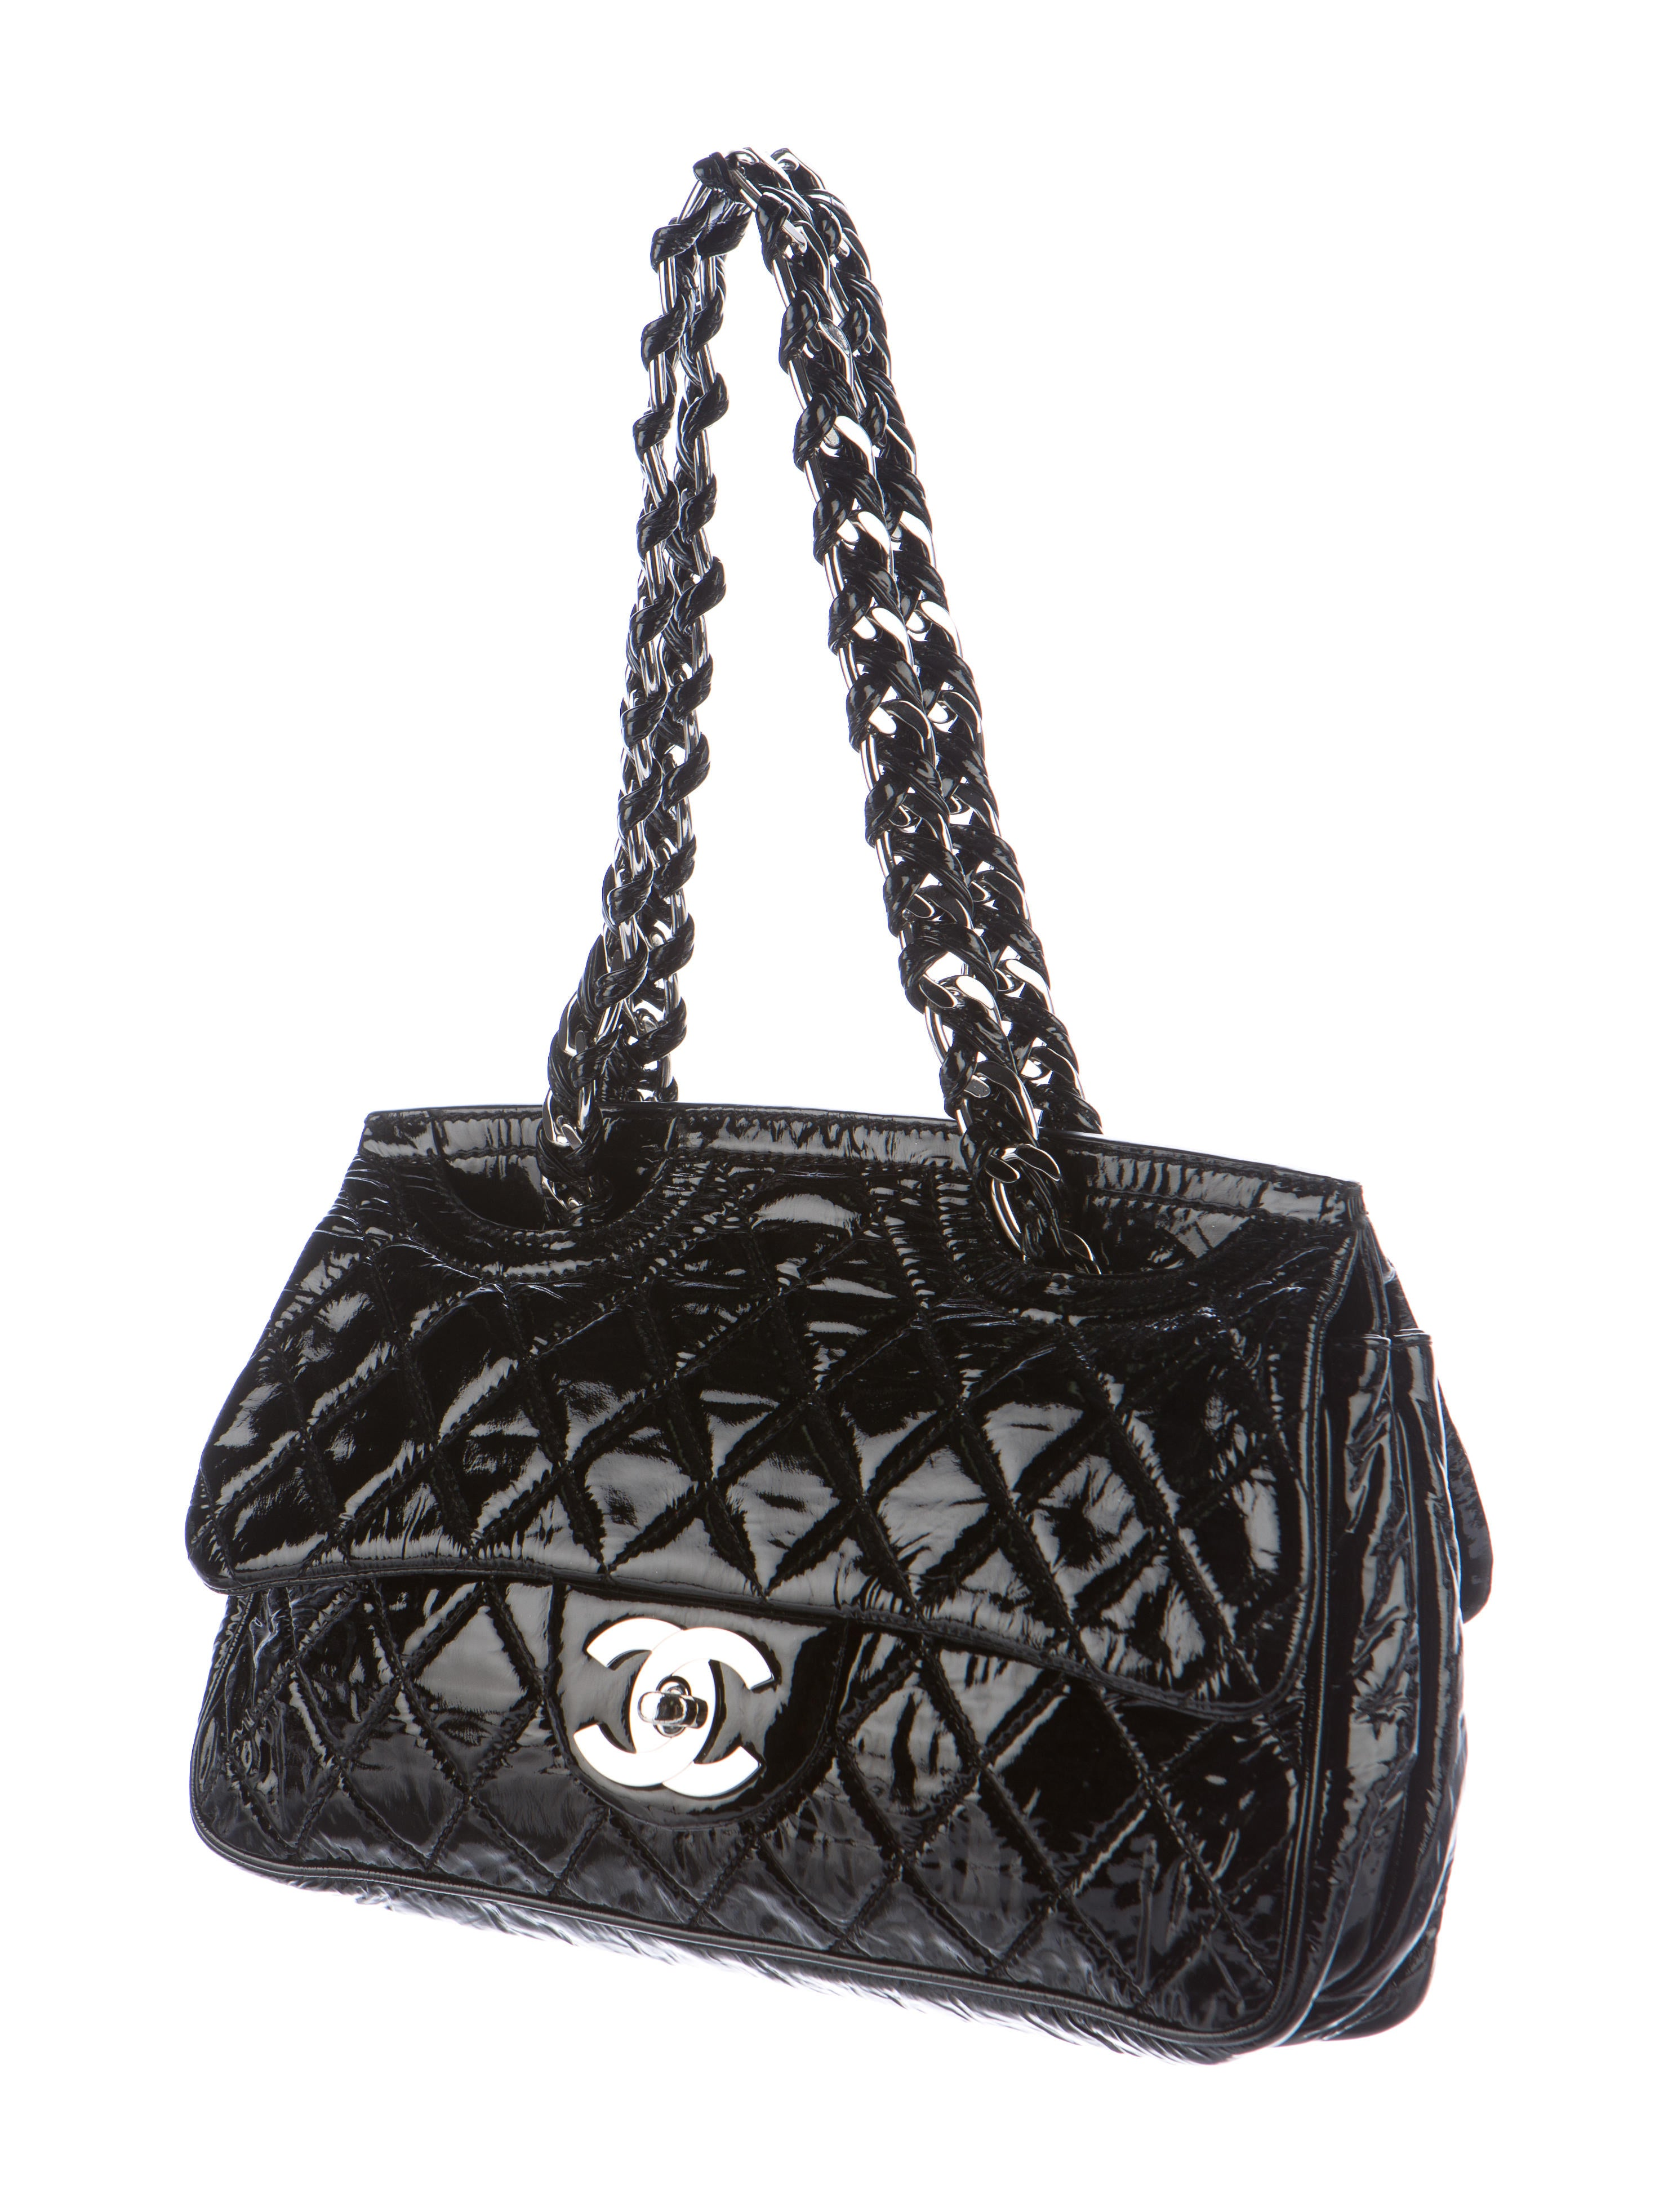 07de38f242d2 Chanel Quilted Patent Leather Flap Bag - Handbags - CHA160831 | The RealReal